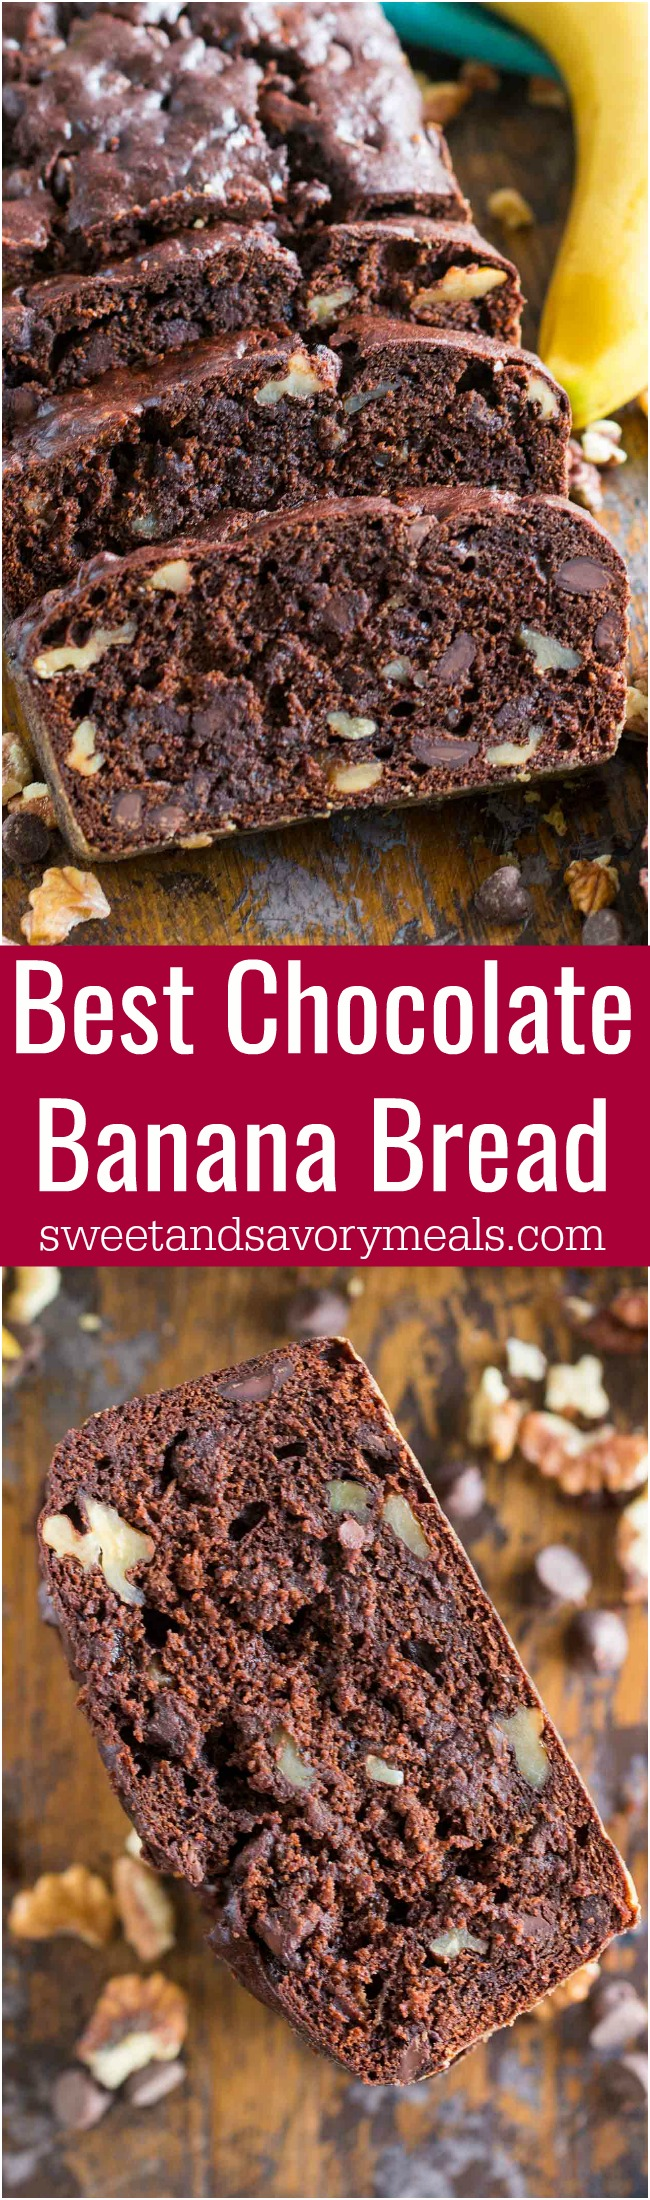 Chocolate Banana Bread Recipe Video Sweet And Savory Meals